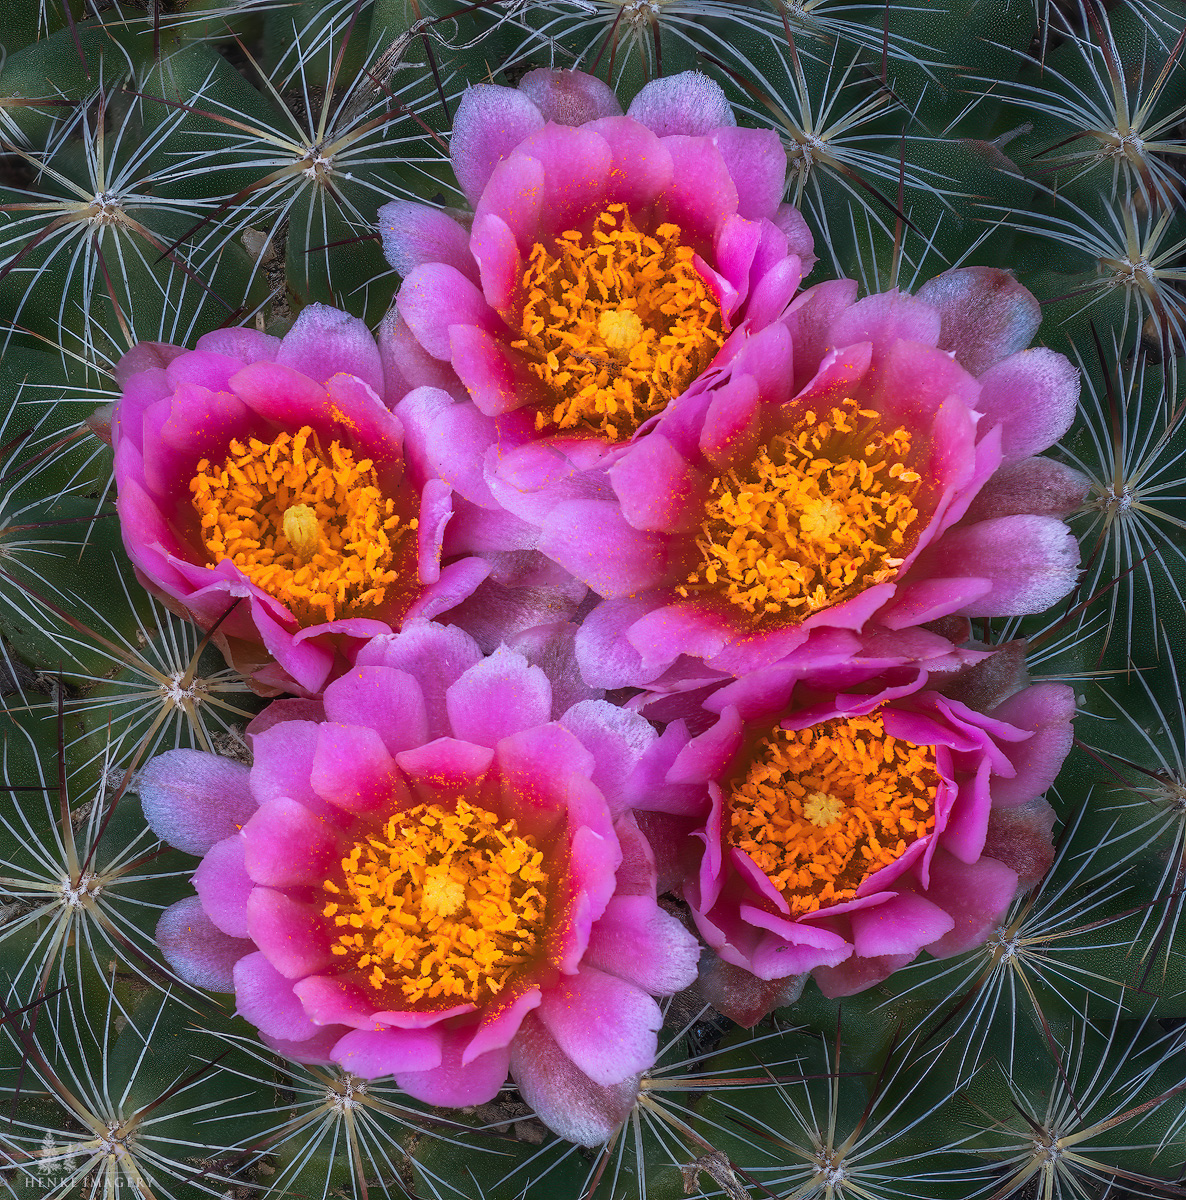 It's always someone surprising that these Mountain Ball Cactus are one of the first flowering plants foothills of the Rocky Mountains...